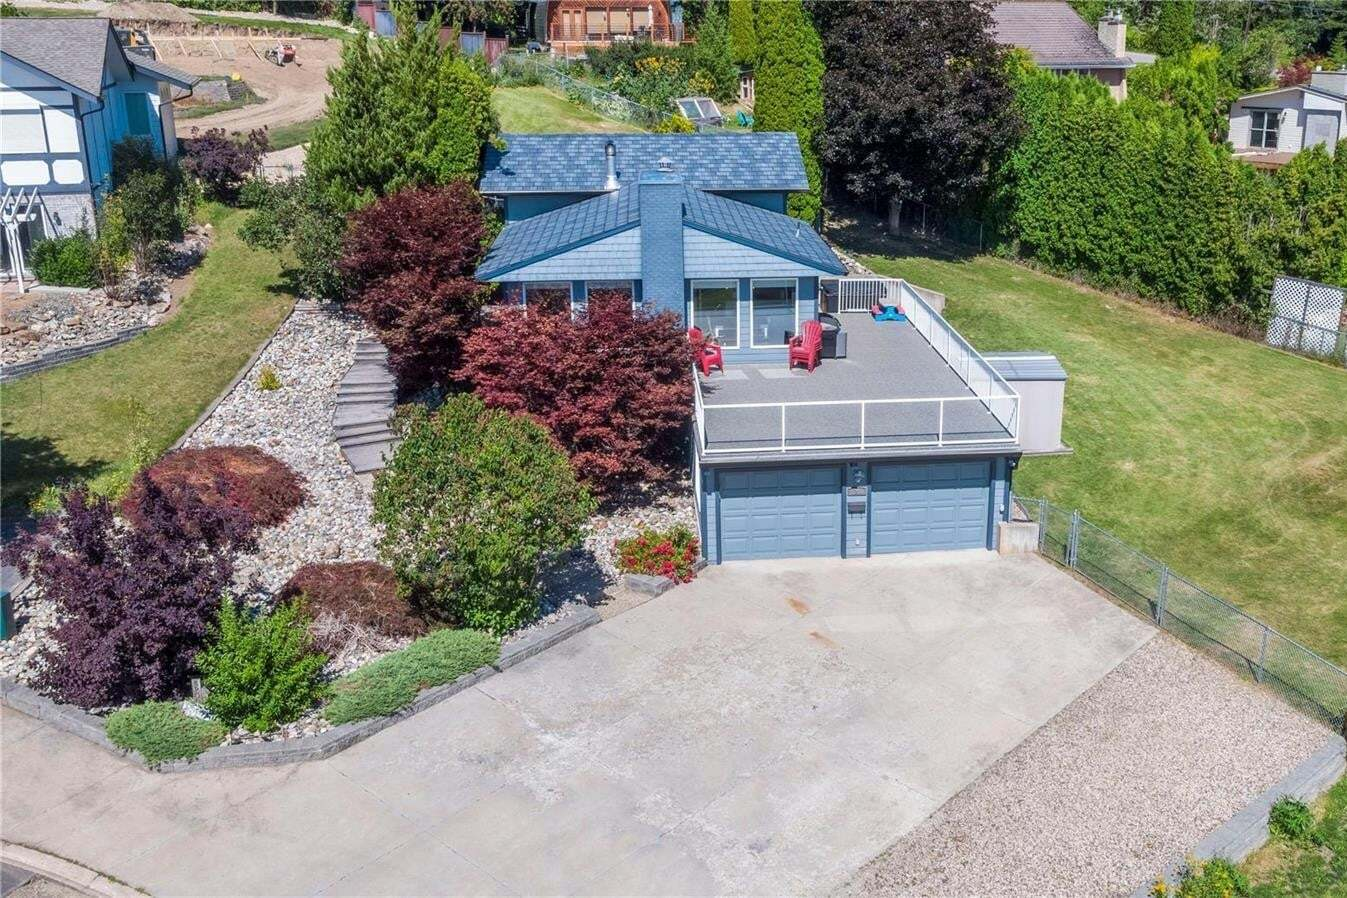 House for sale at 5200 14 St Northeast Salmon Arm British Columbia - MLS: 10212577